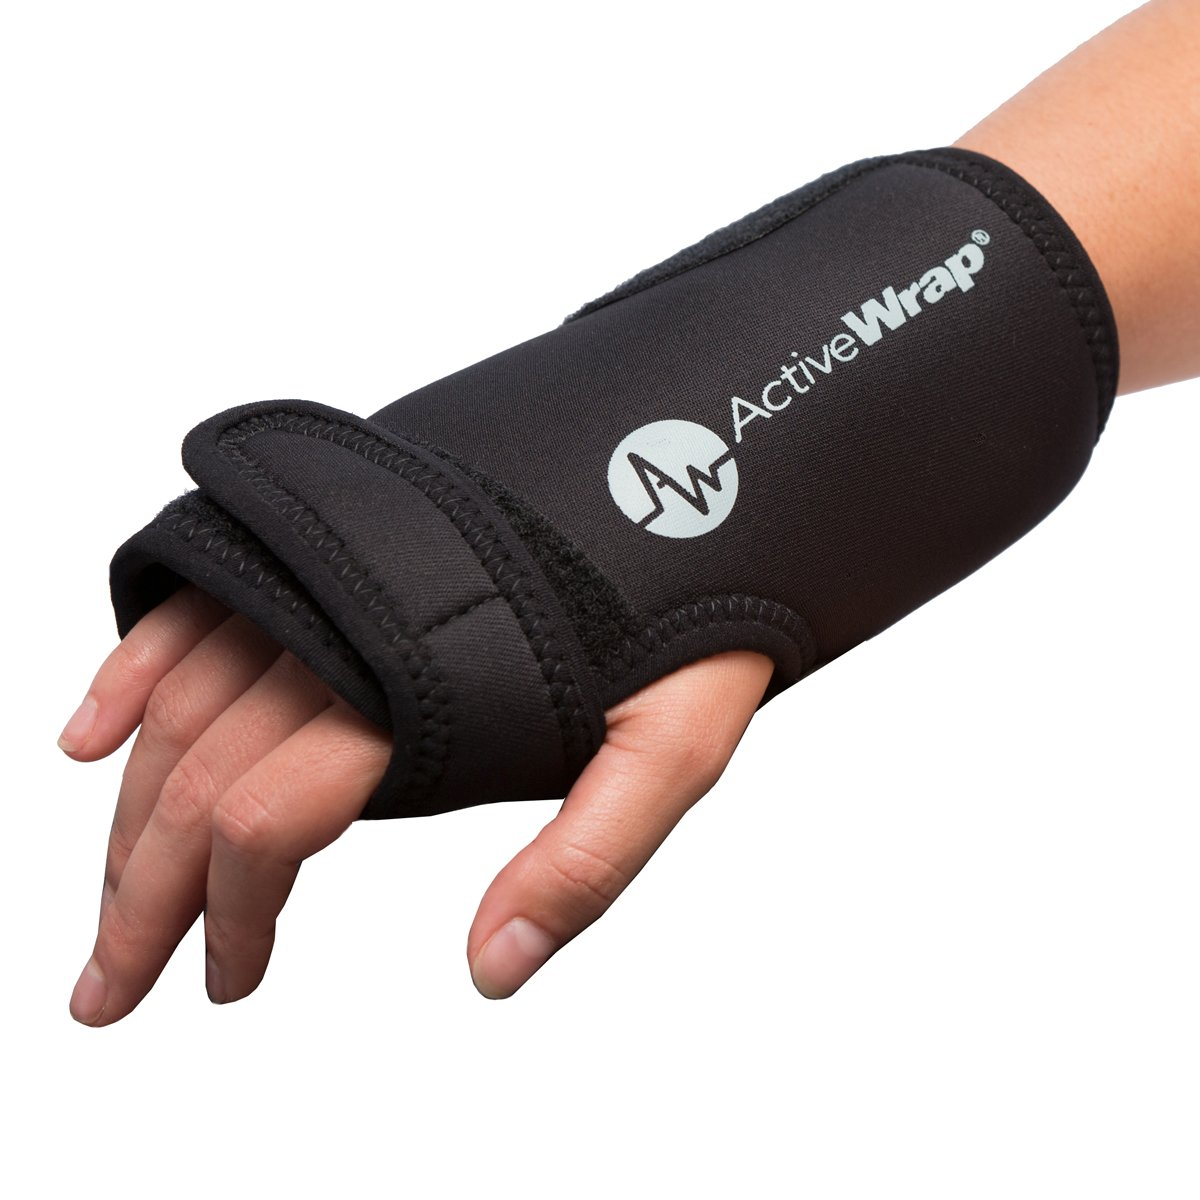 ActiveWrap Hot/Cold Reusable Compress Therapy Wrist/Hand - Universal - OSFM #BAWH007